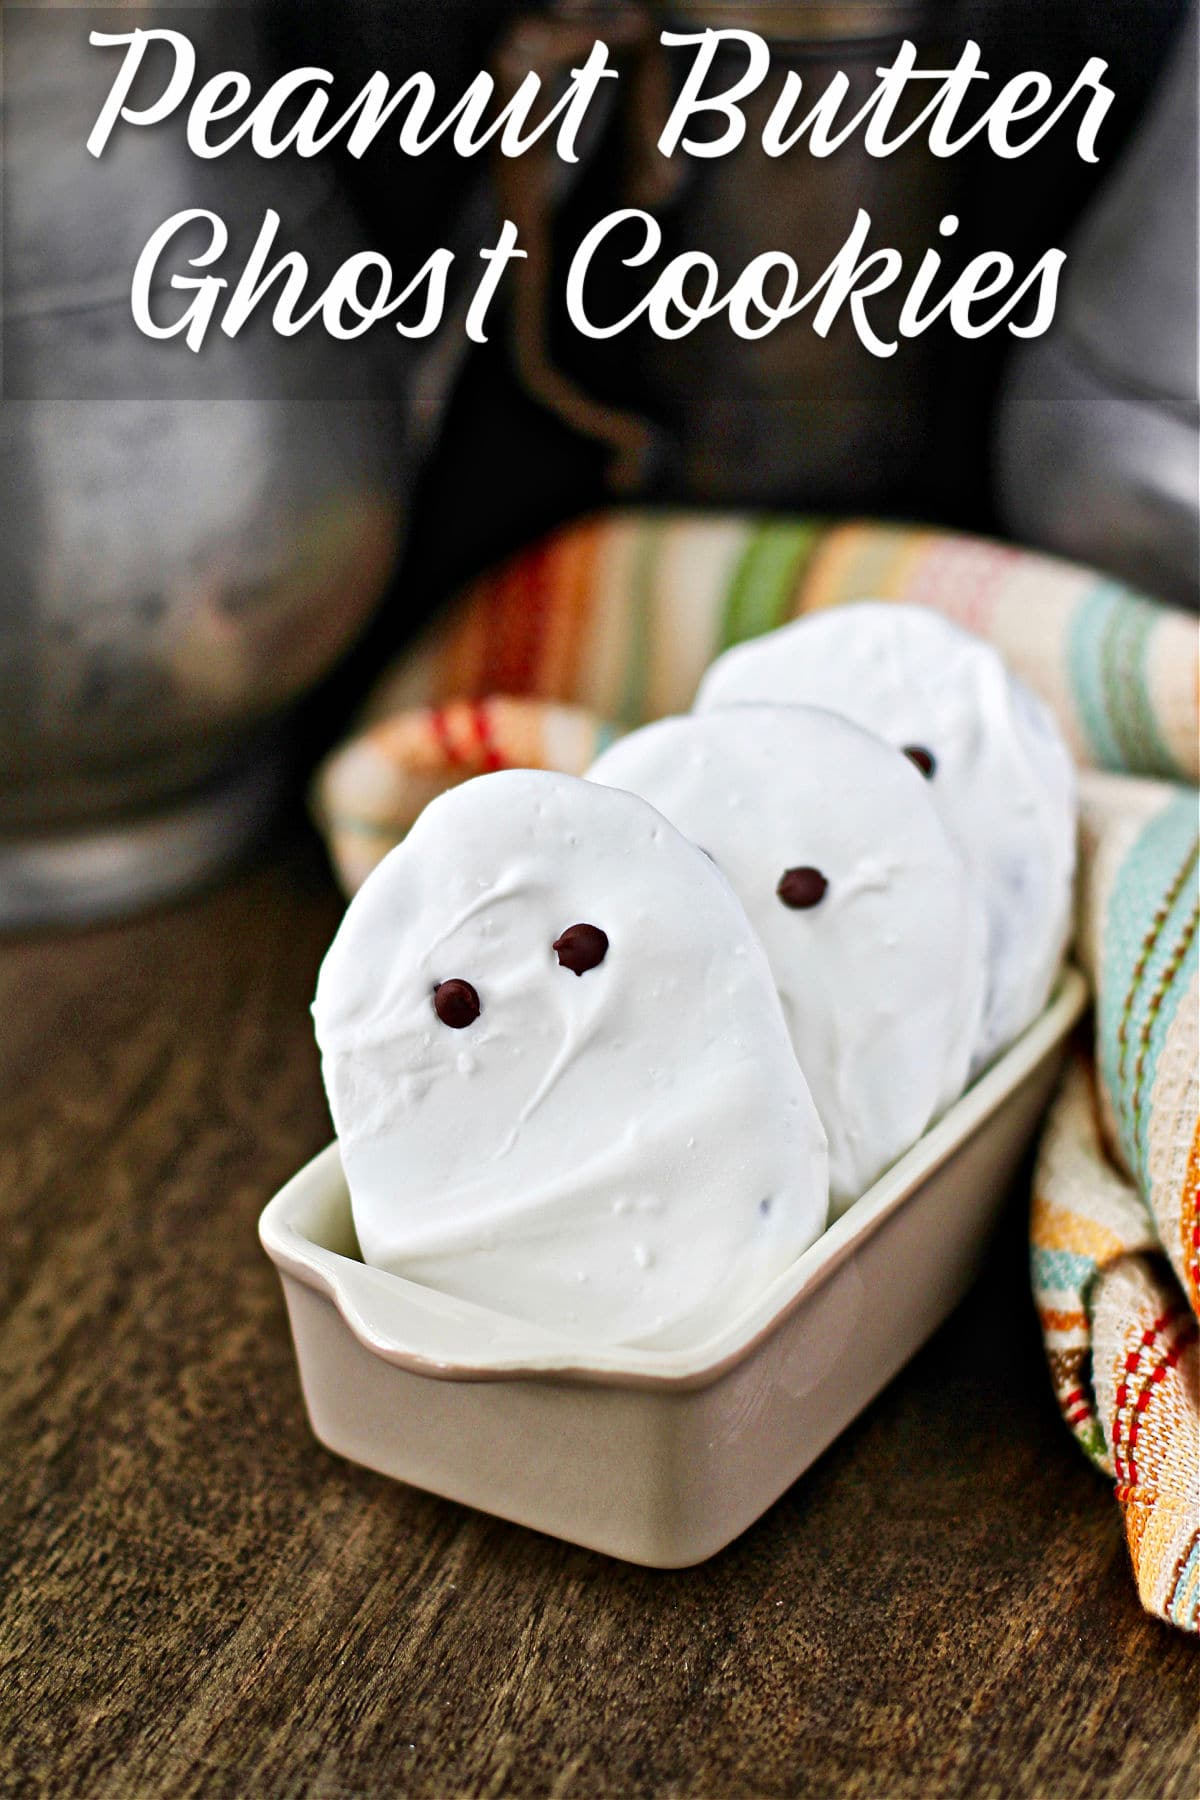 Peanut Butter Ghost Cookies.